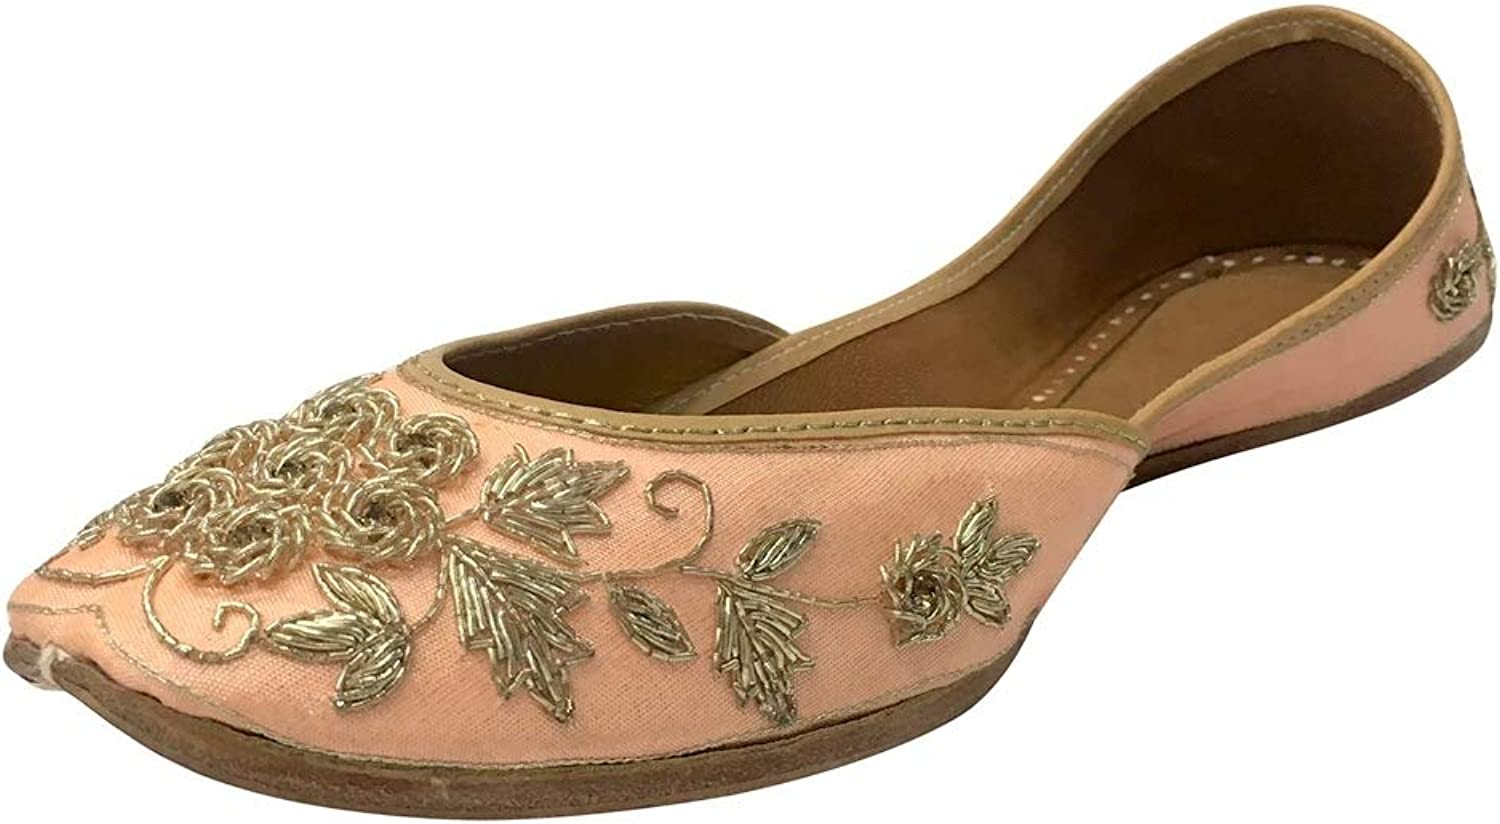 Step n Style Embroidered Handmade Women Ballet shoes Mojari Slipon Jutti Khussa shoes